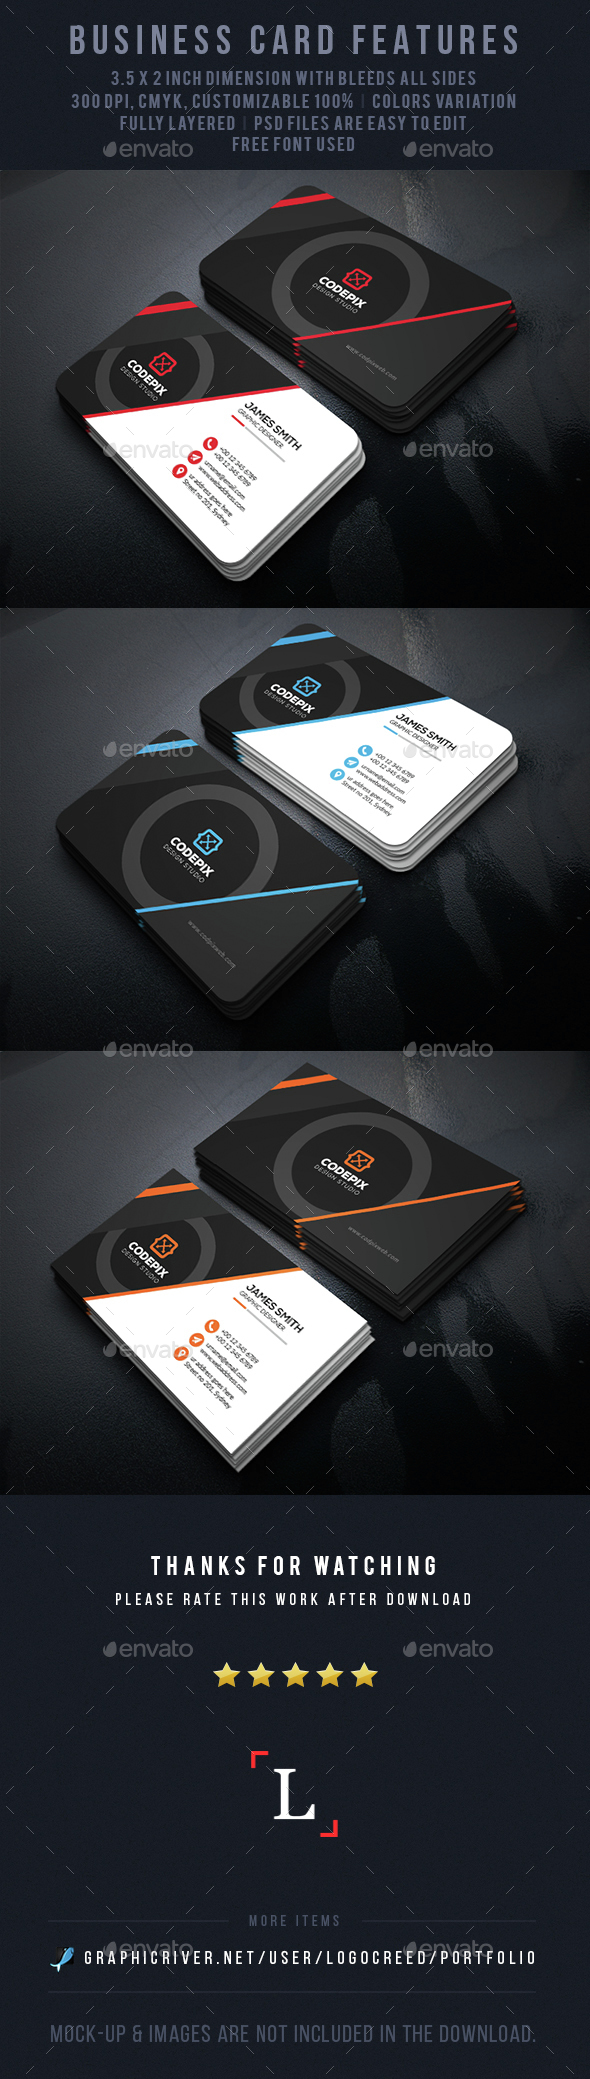 Circle Corporate Business Card - Business Cards Print Templates